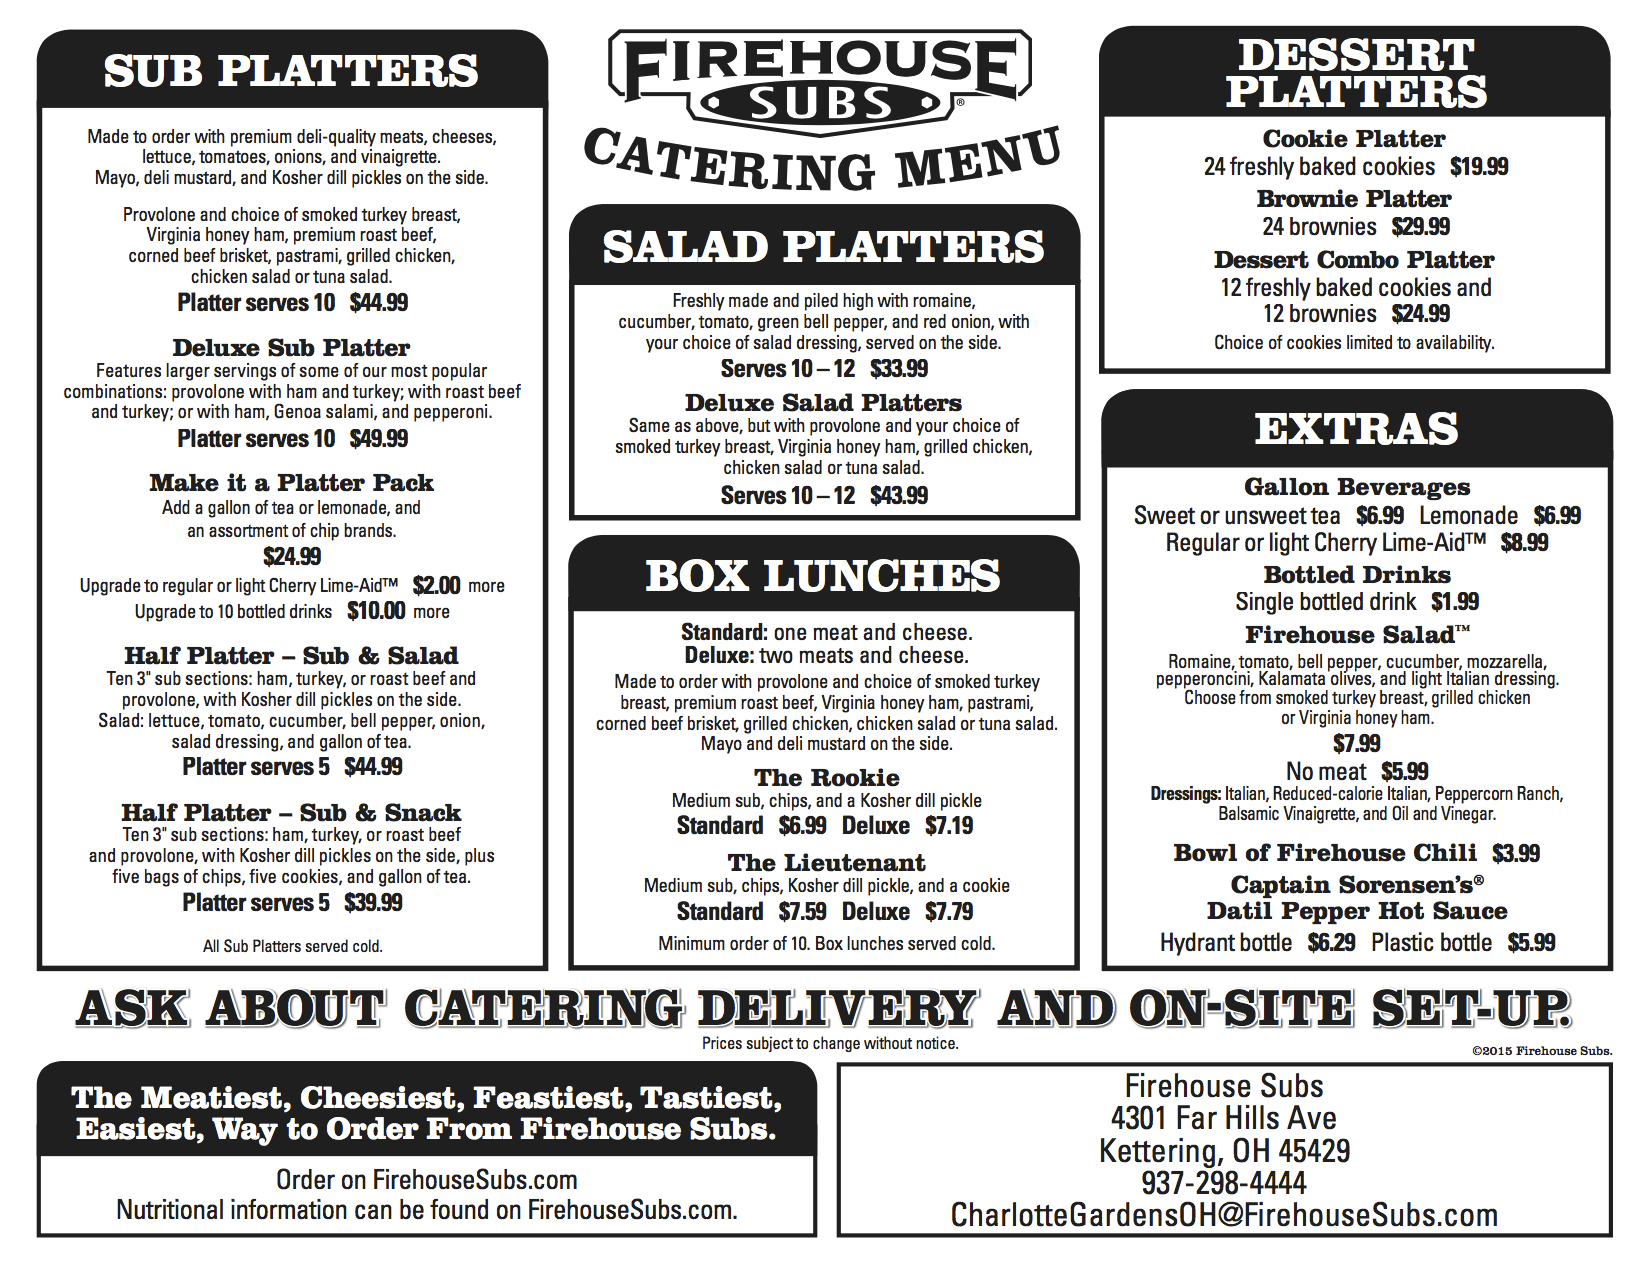 Firehouse Subs Kettering Now Caters Firehouse Subs